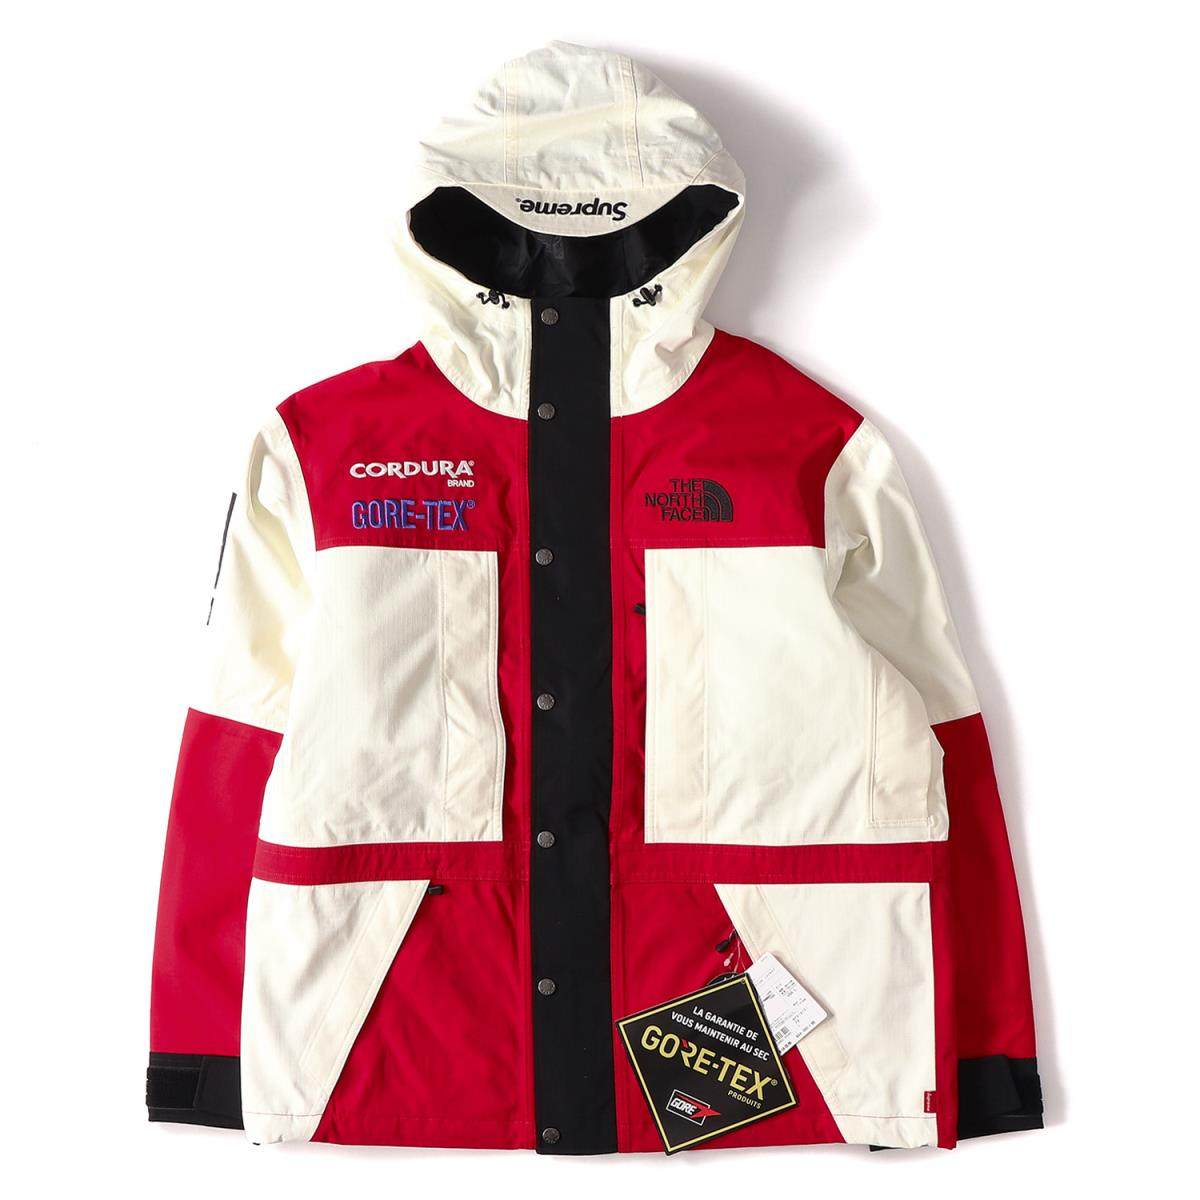 Papyrus L For Supreme シュプリーム North Face Jacket The Gore Tex Mountain Expedition 18 Years In Fall And Winter